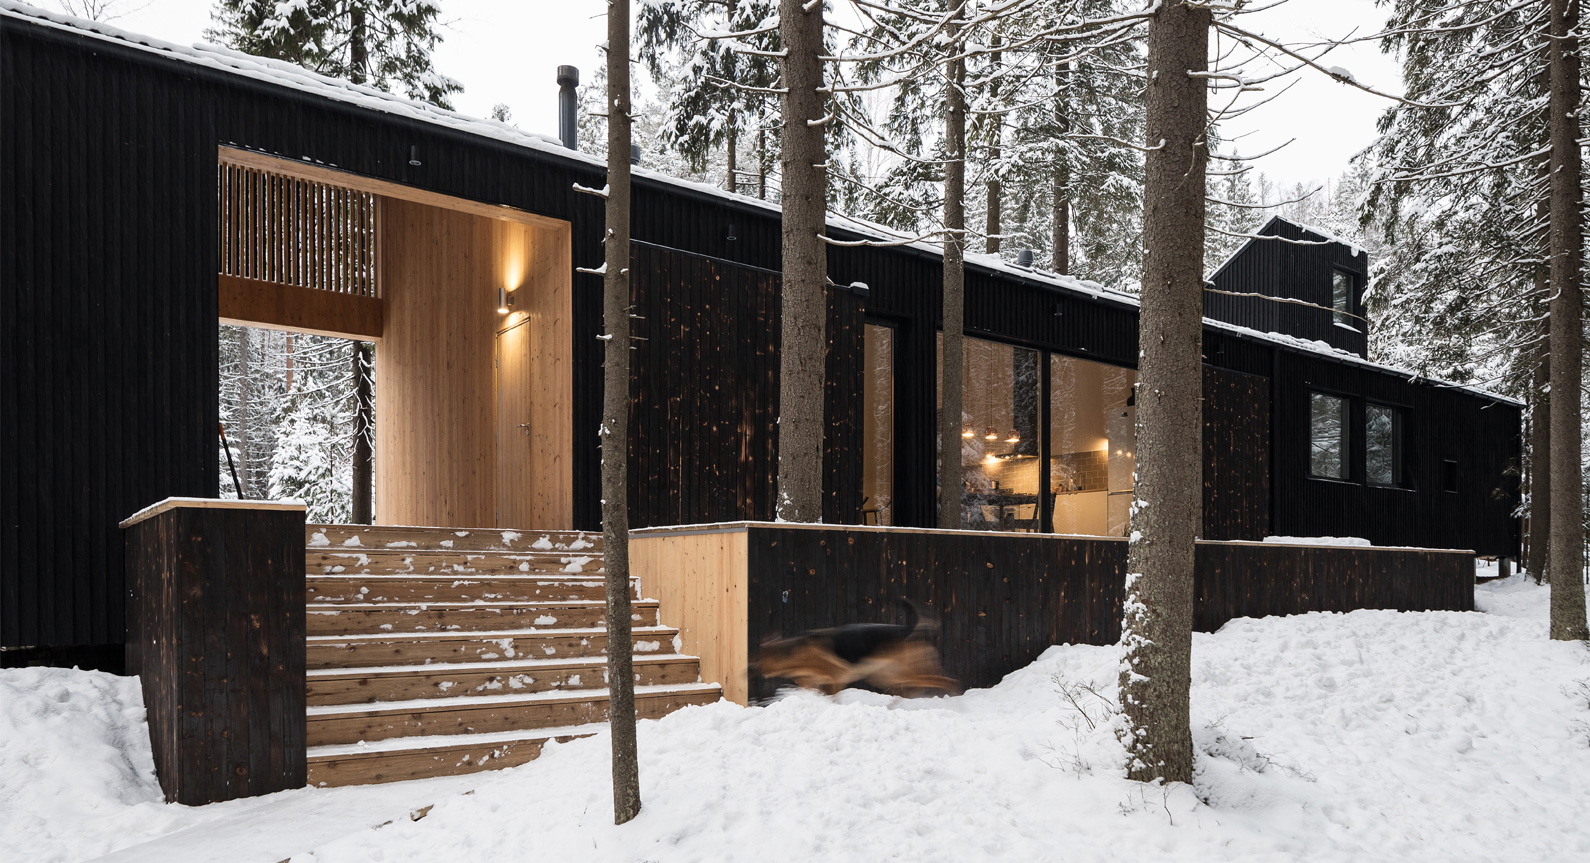 Take A Retreat Into The Woods With The House In Roschino